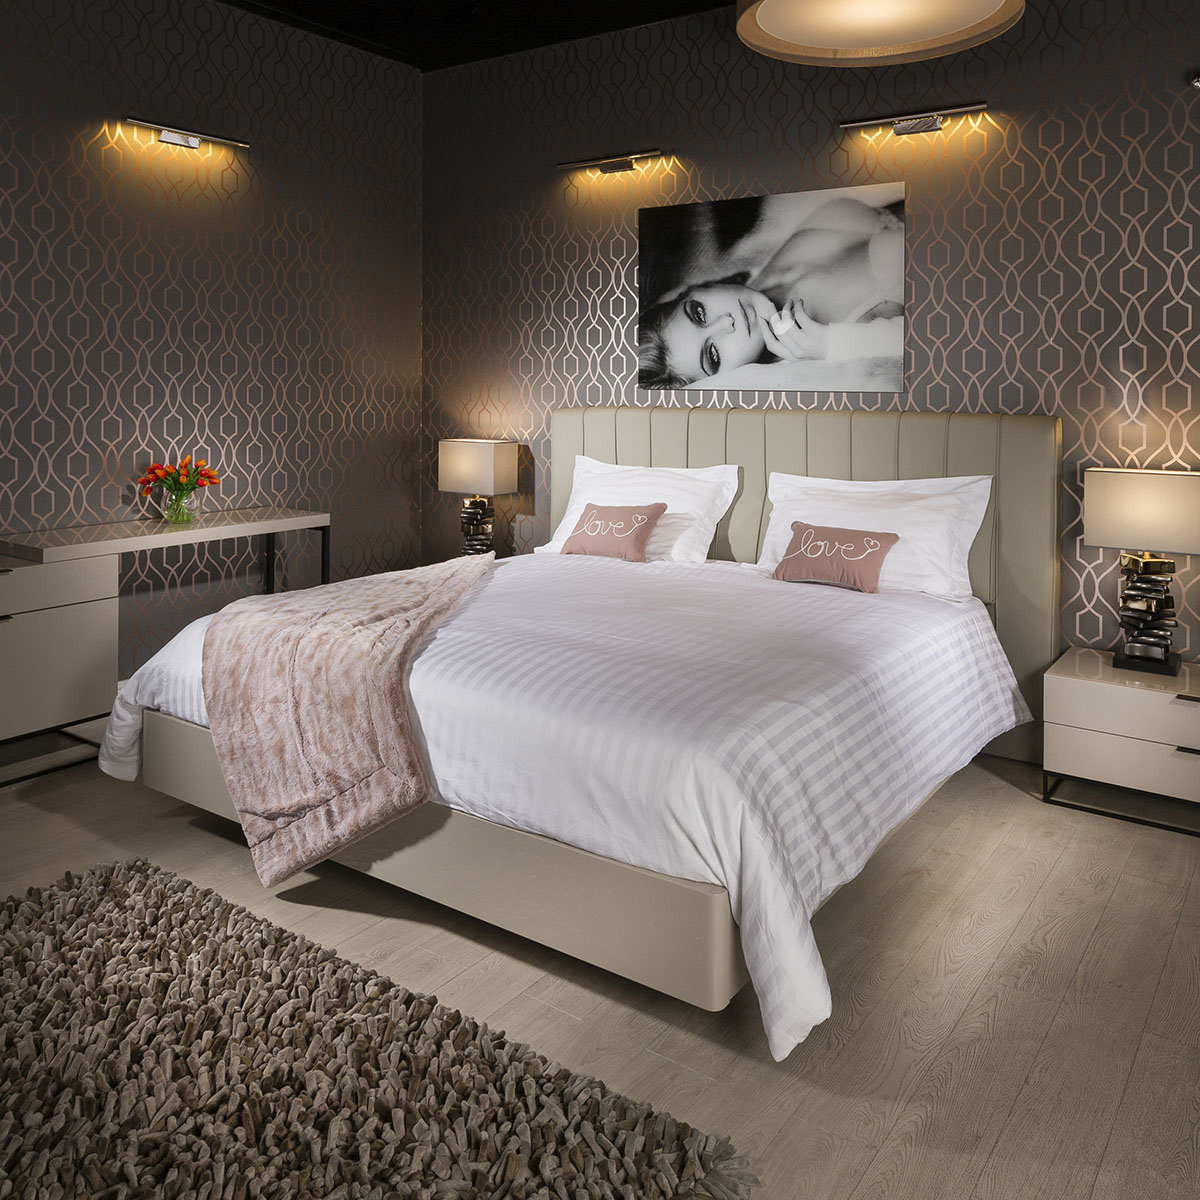 How Big Is A Super King Bed Details About Quatropi Deluxe Super King Bed Frame And Headboard Avoria Grey 1 8mtr